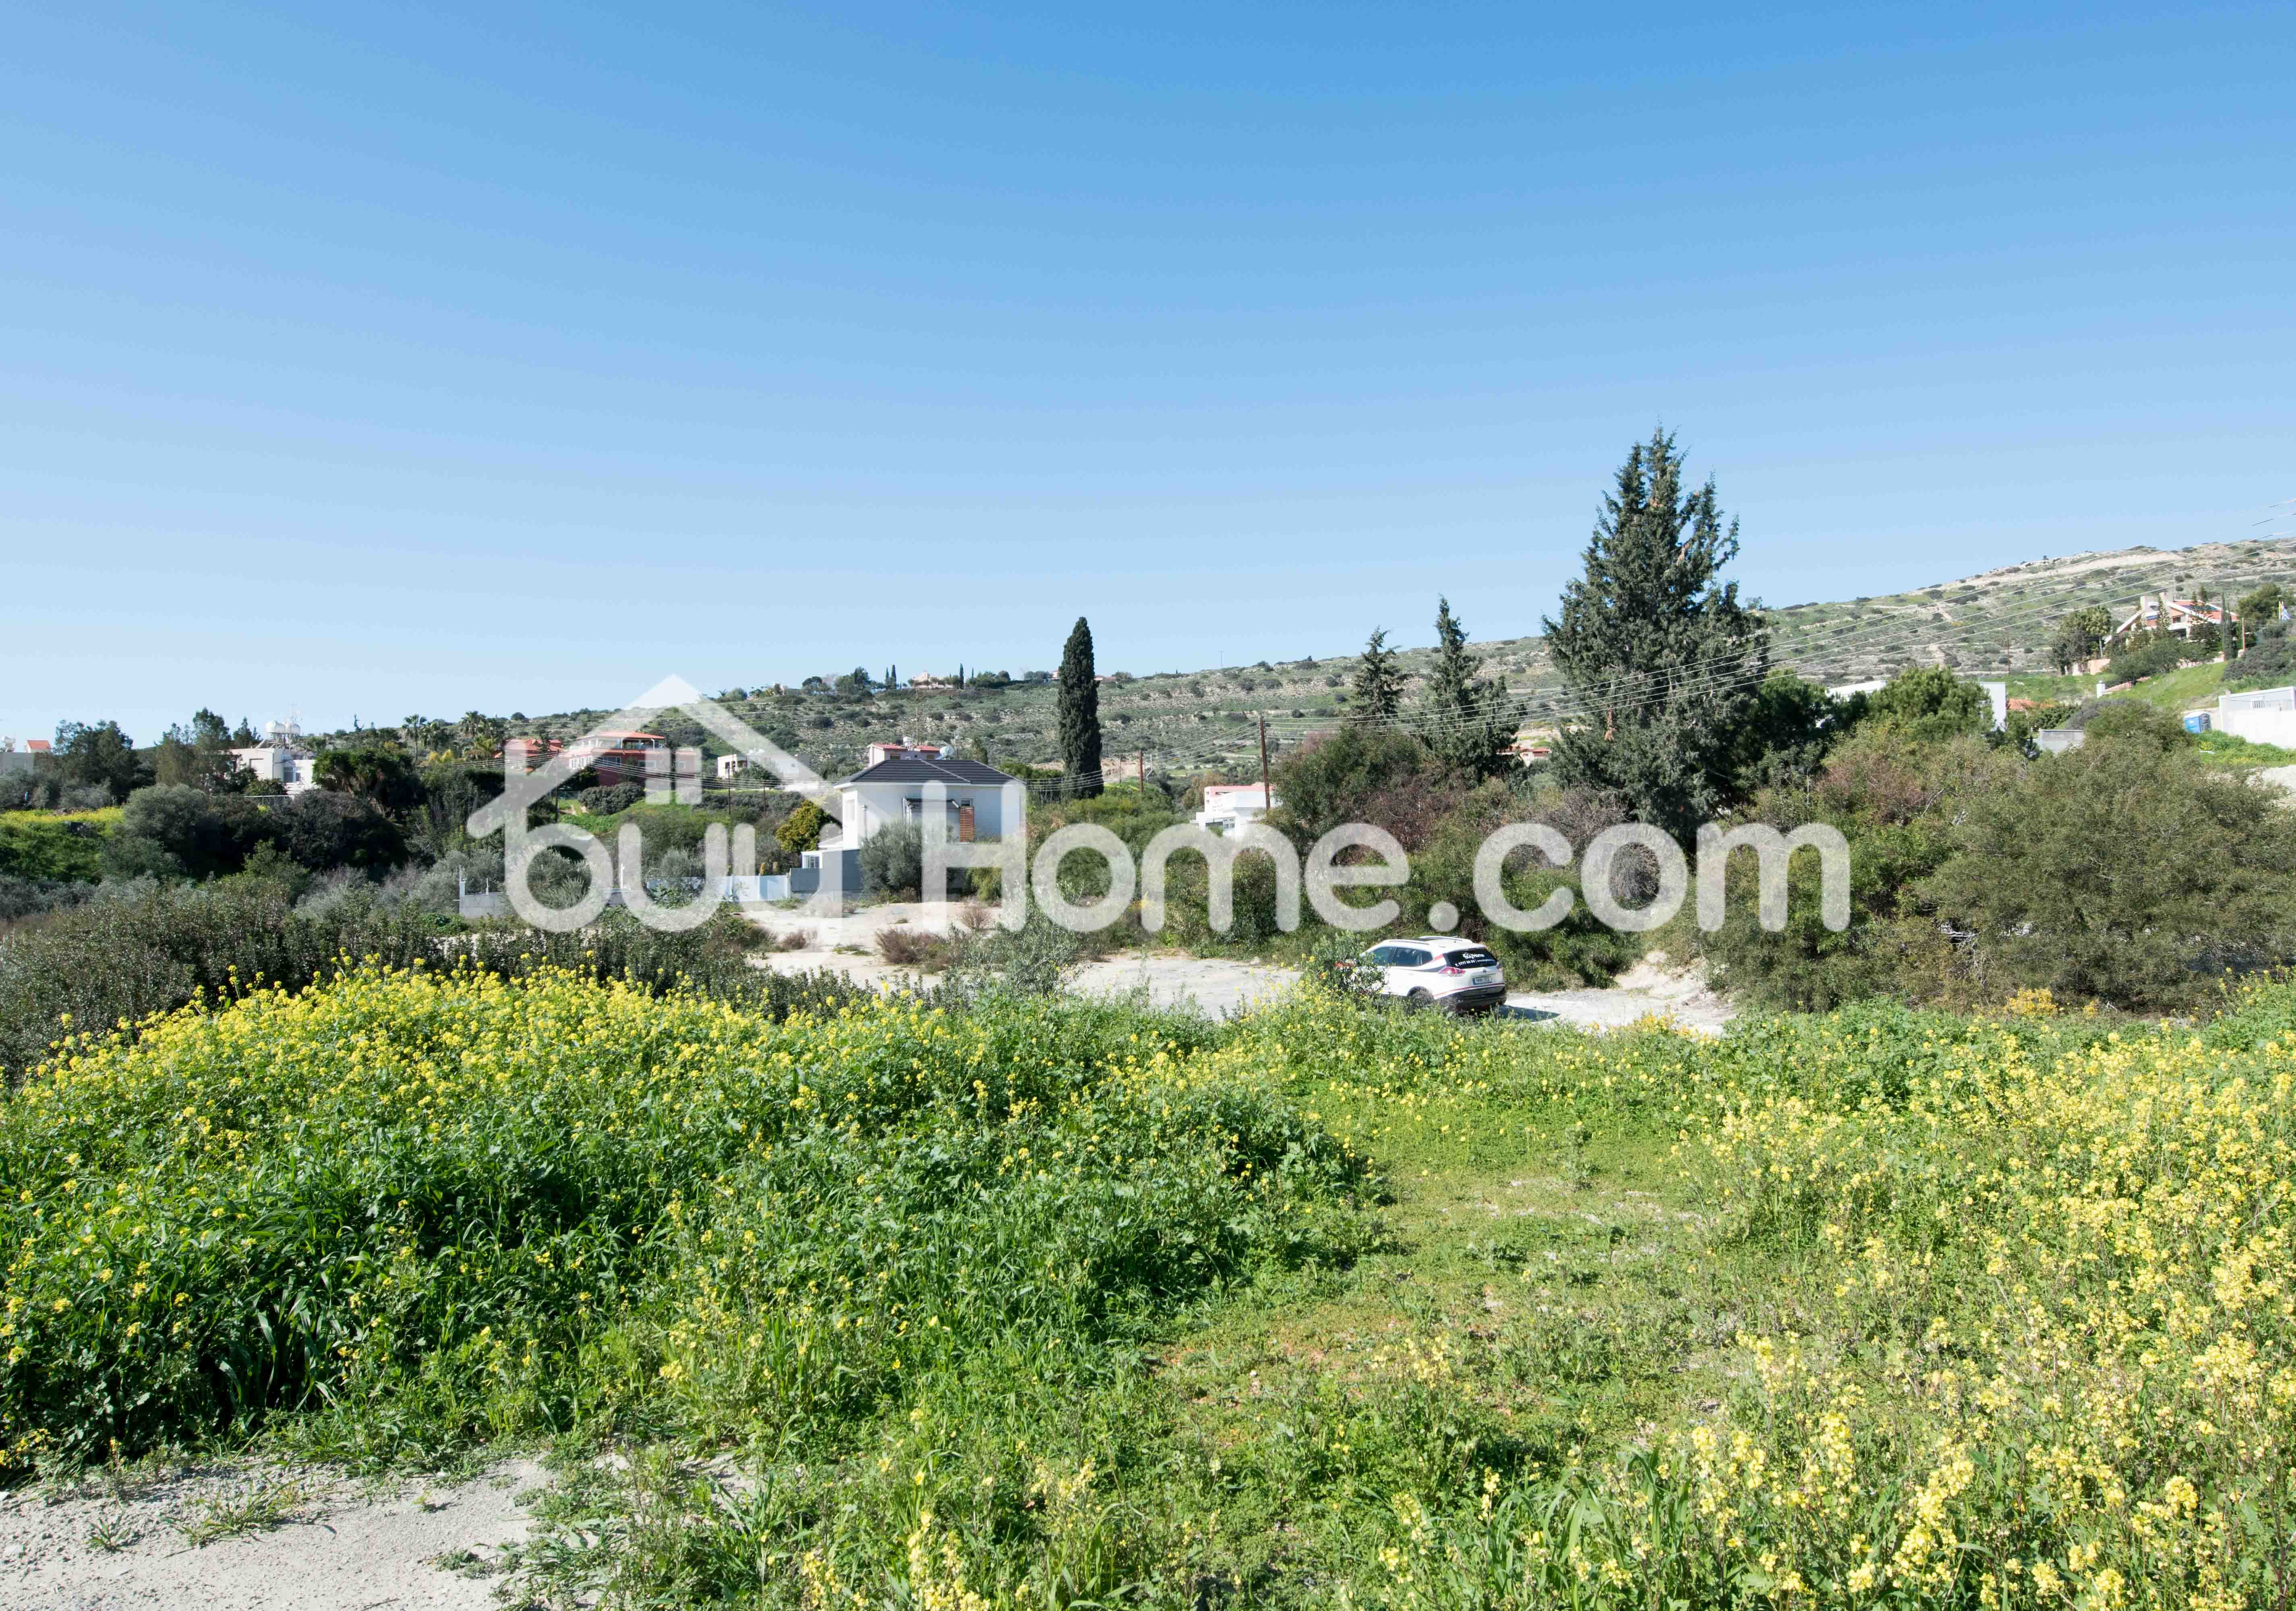 Land  With Licence For 5 Houses | BuyHome